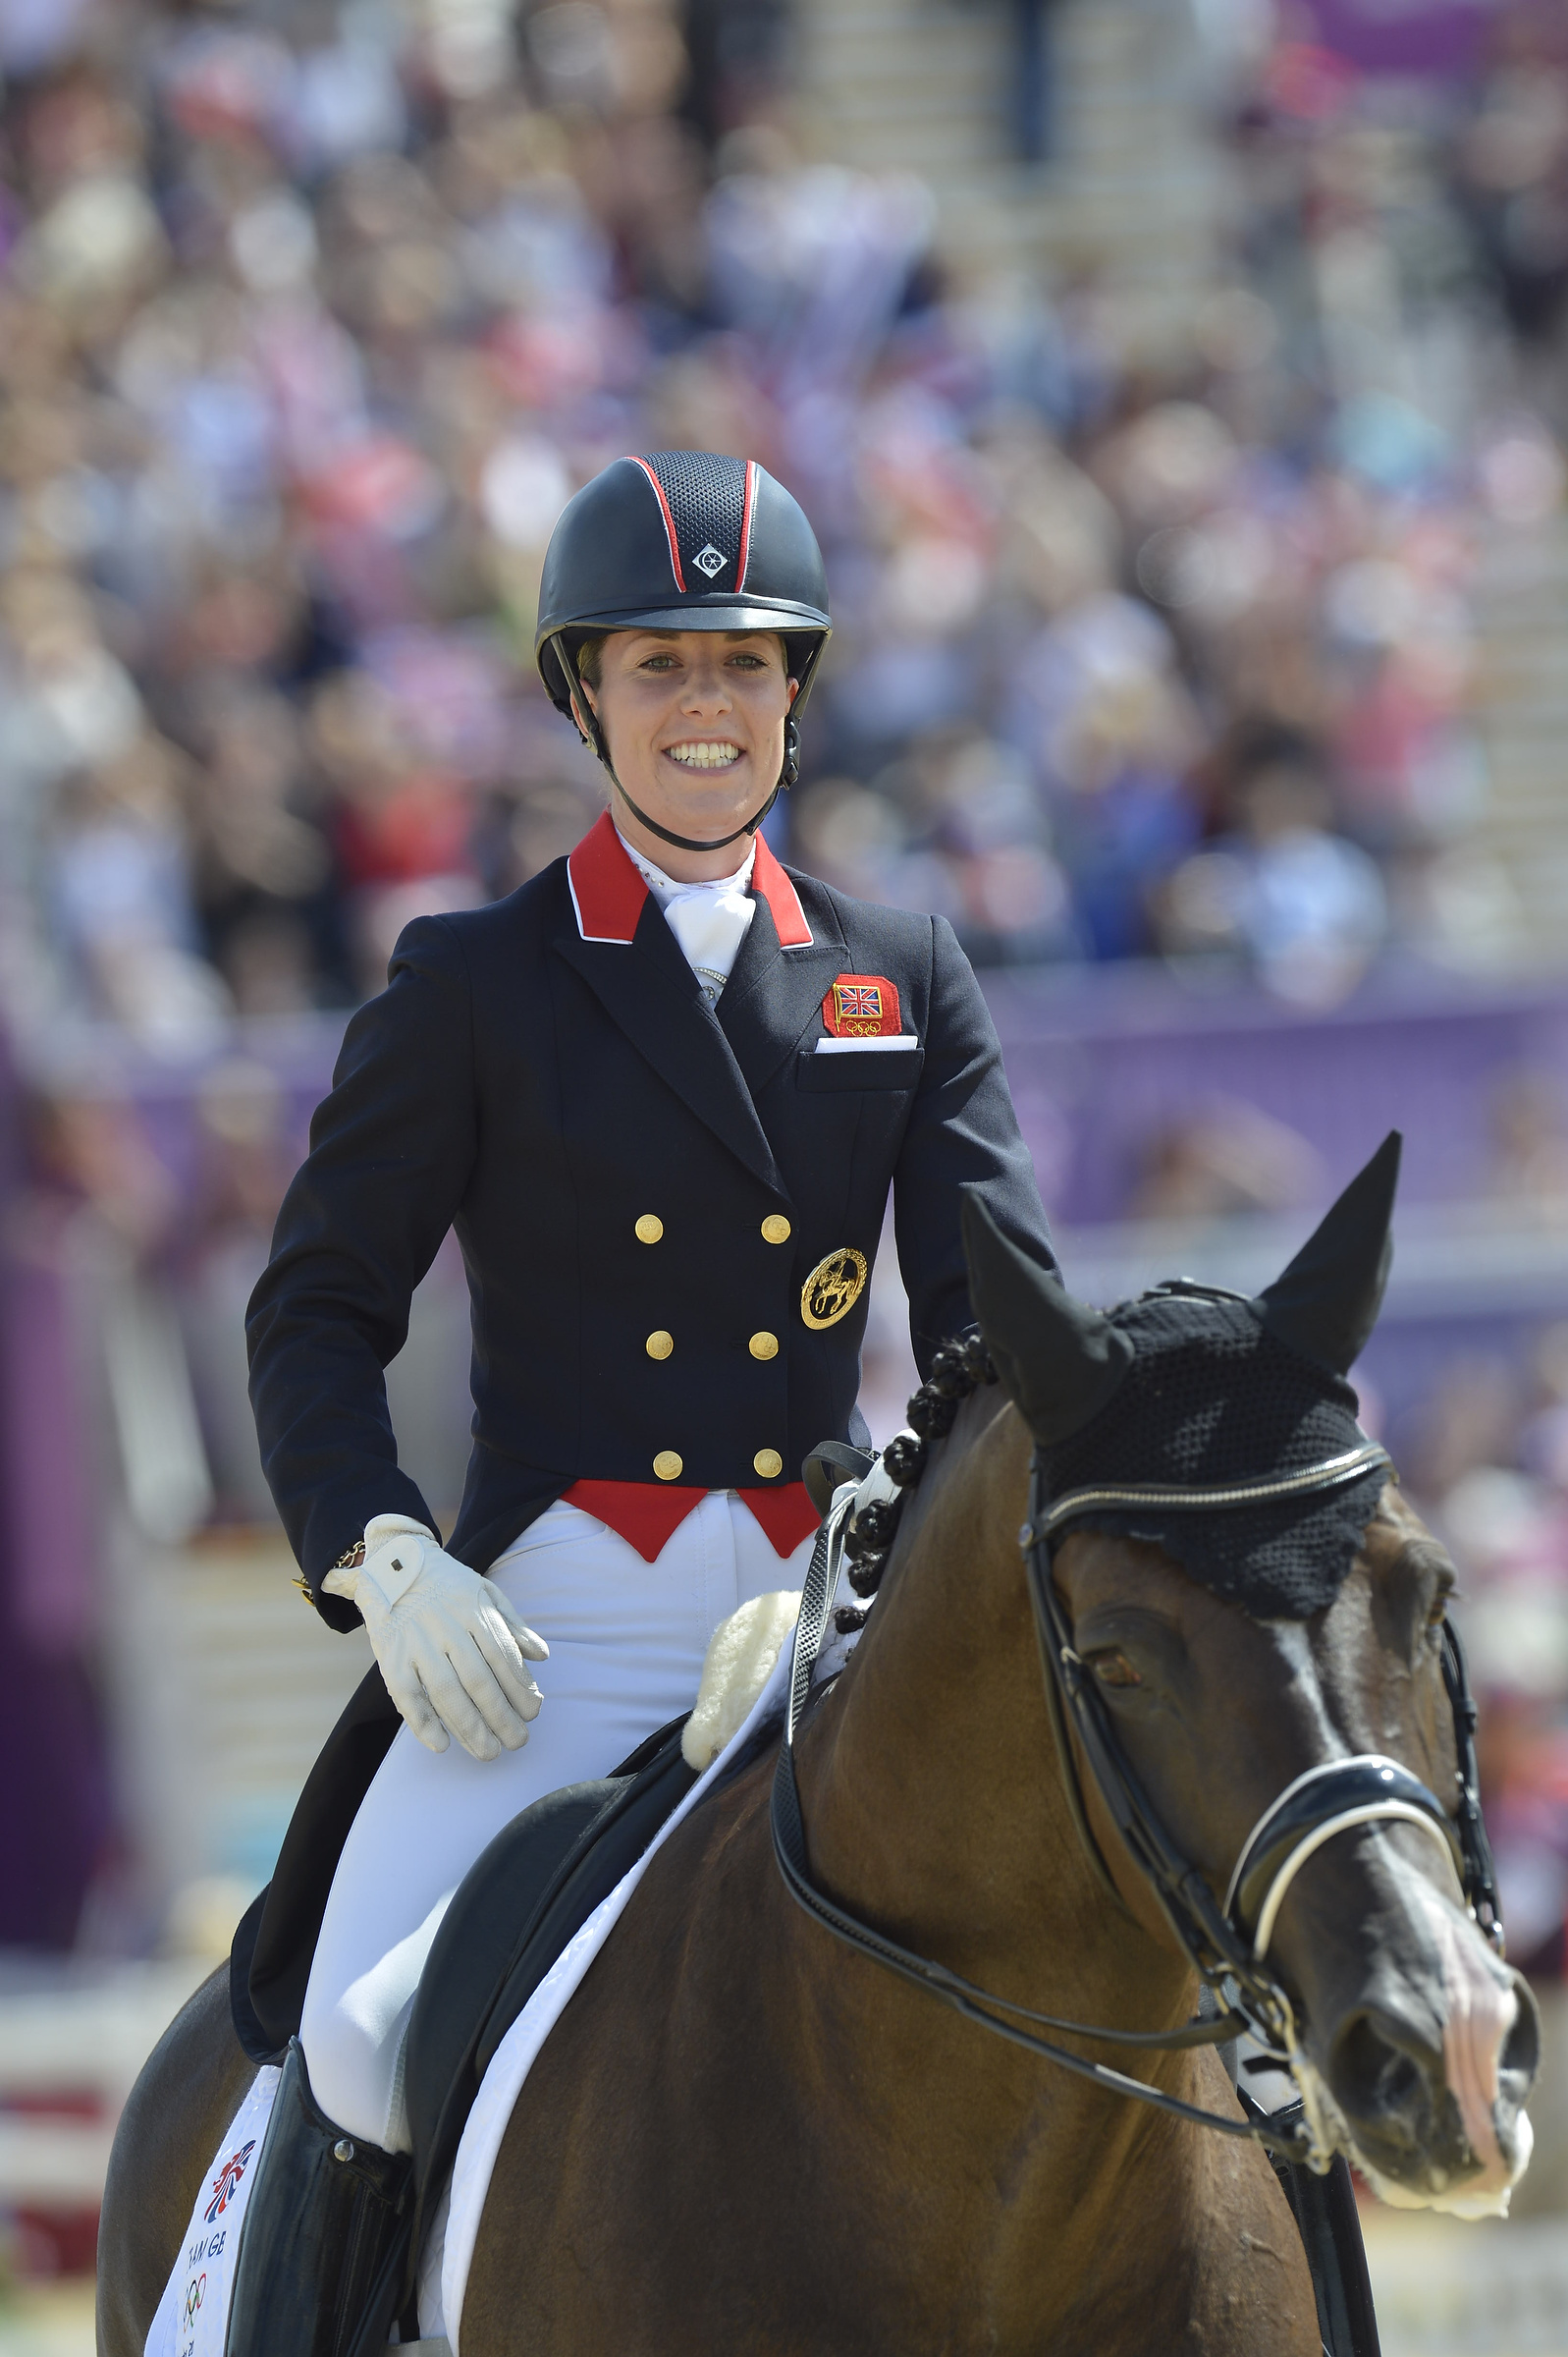 dressage can britain s golden couple do it again the gaitpost the multiple record breaking dressage partnership of great britain s charlotte dujardin and valegro are in